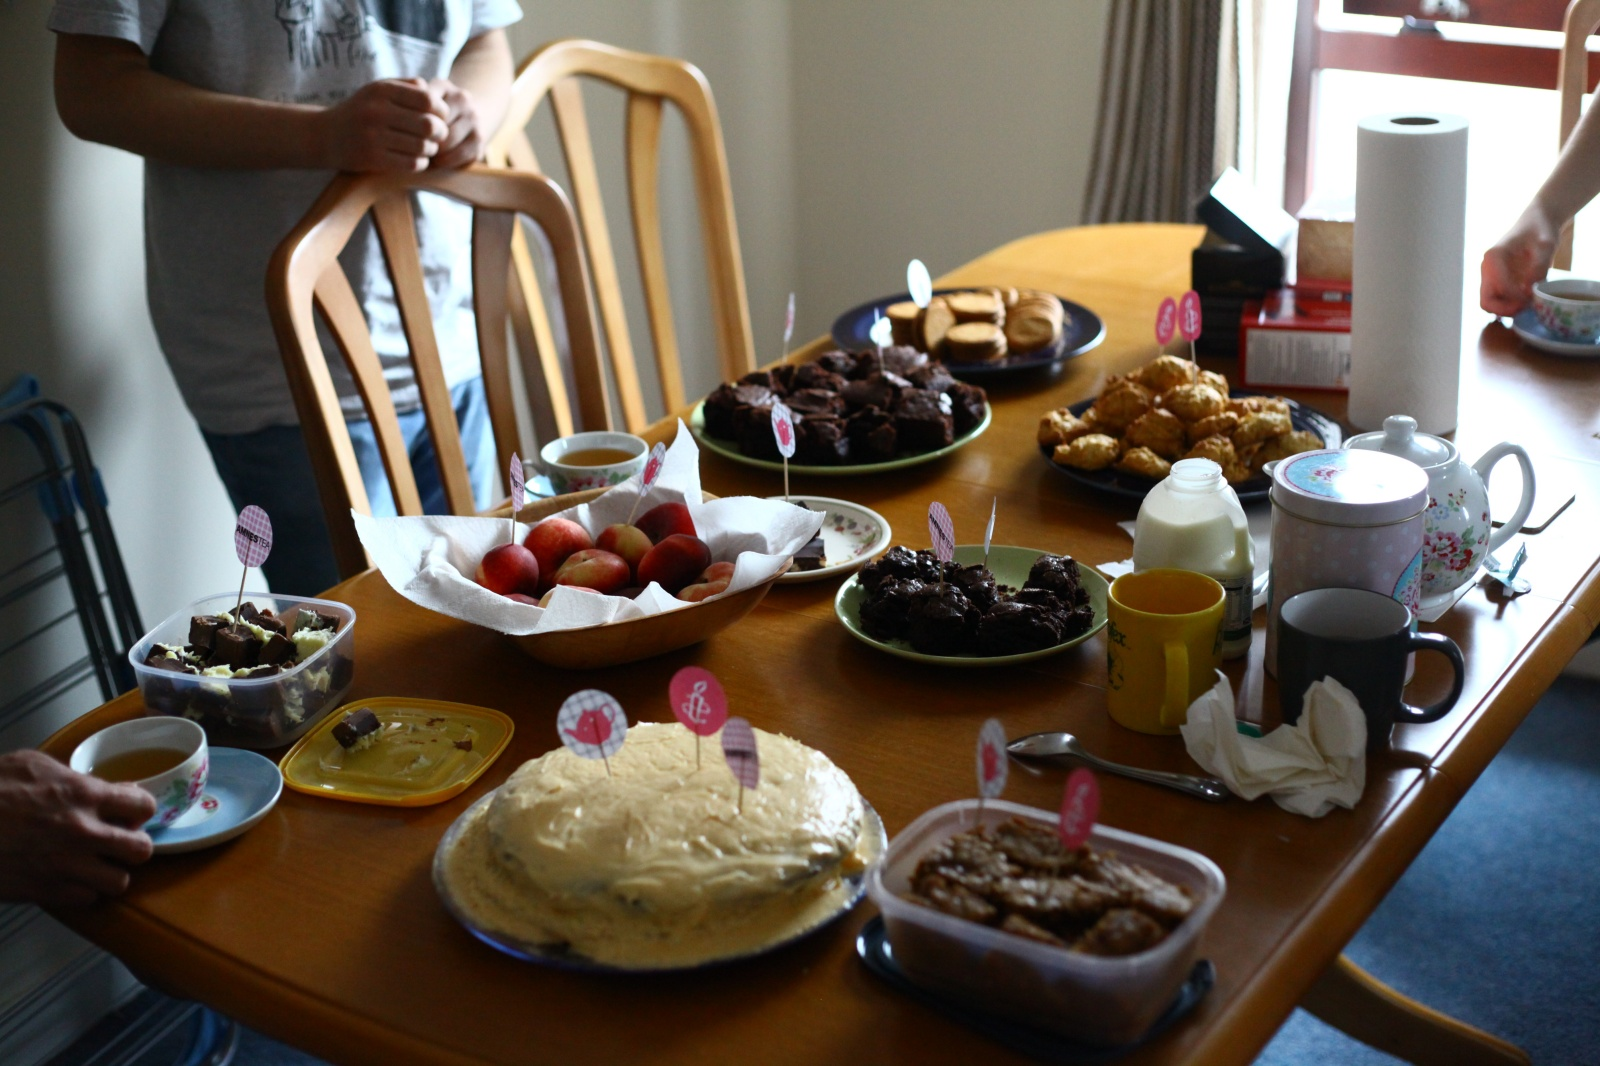 A table *full* of cakes biscuits sweets and tea!